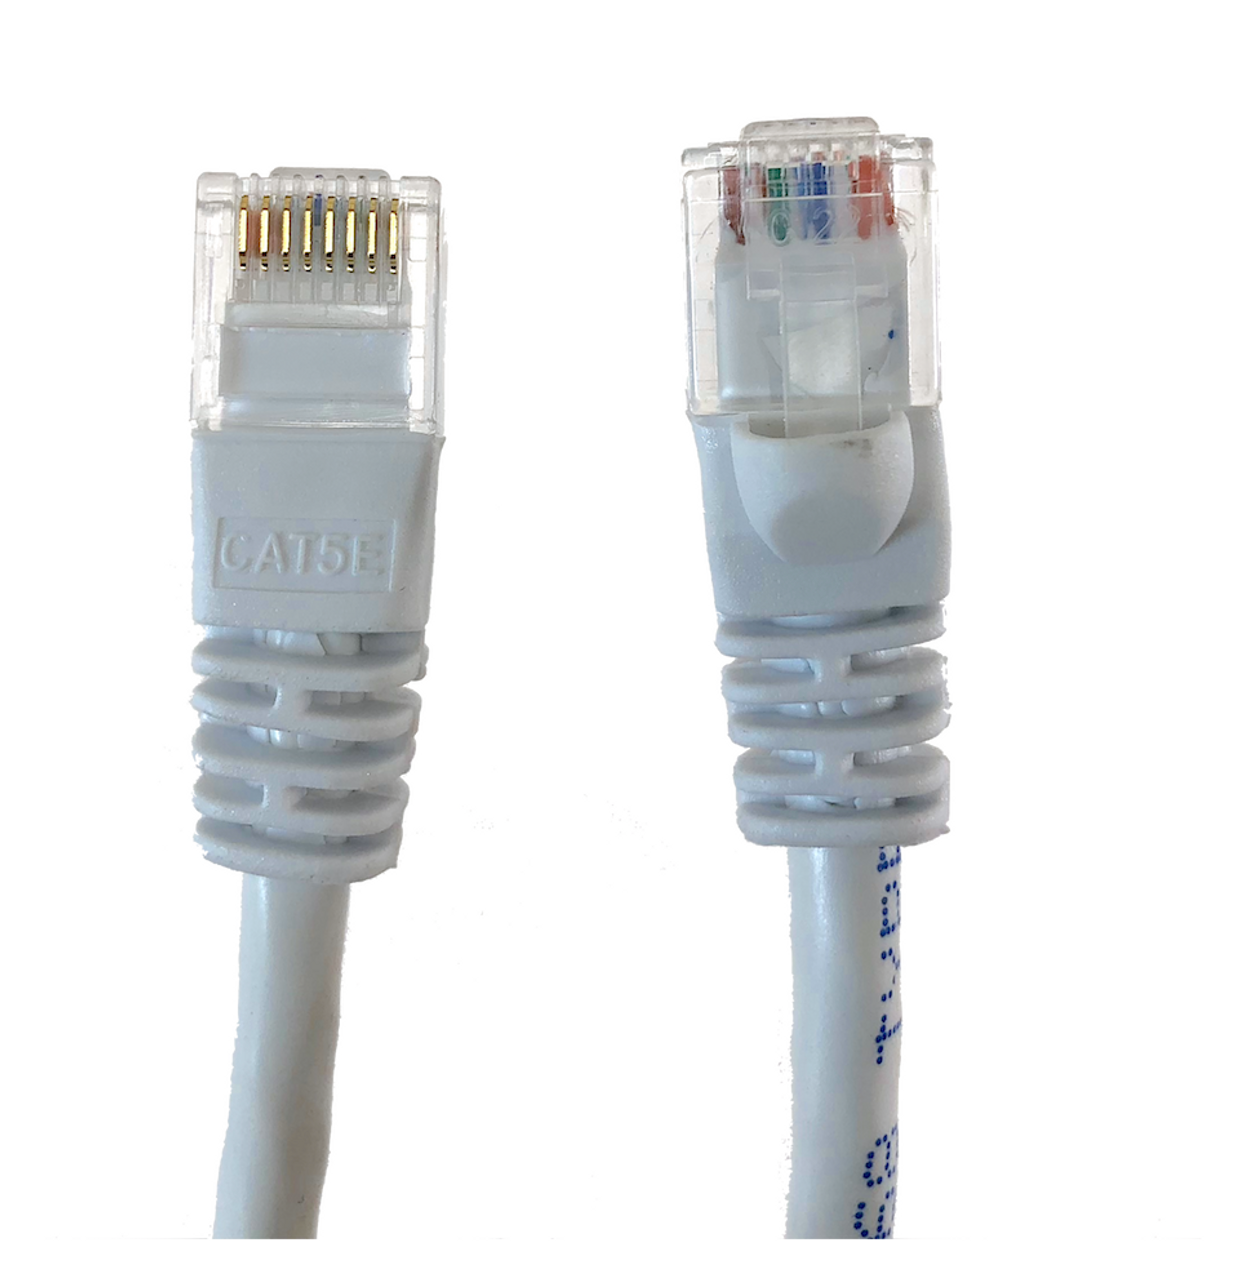 Category 5E UTP RJ45 Patch Cable White - 5 ft